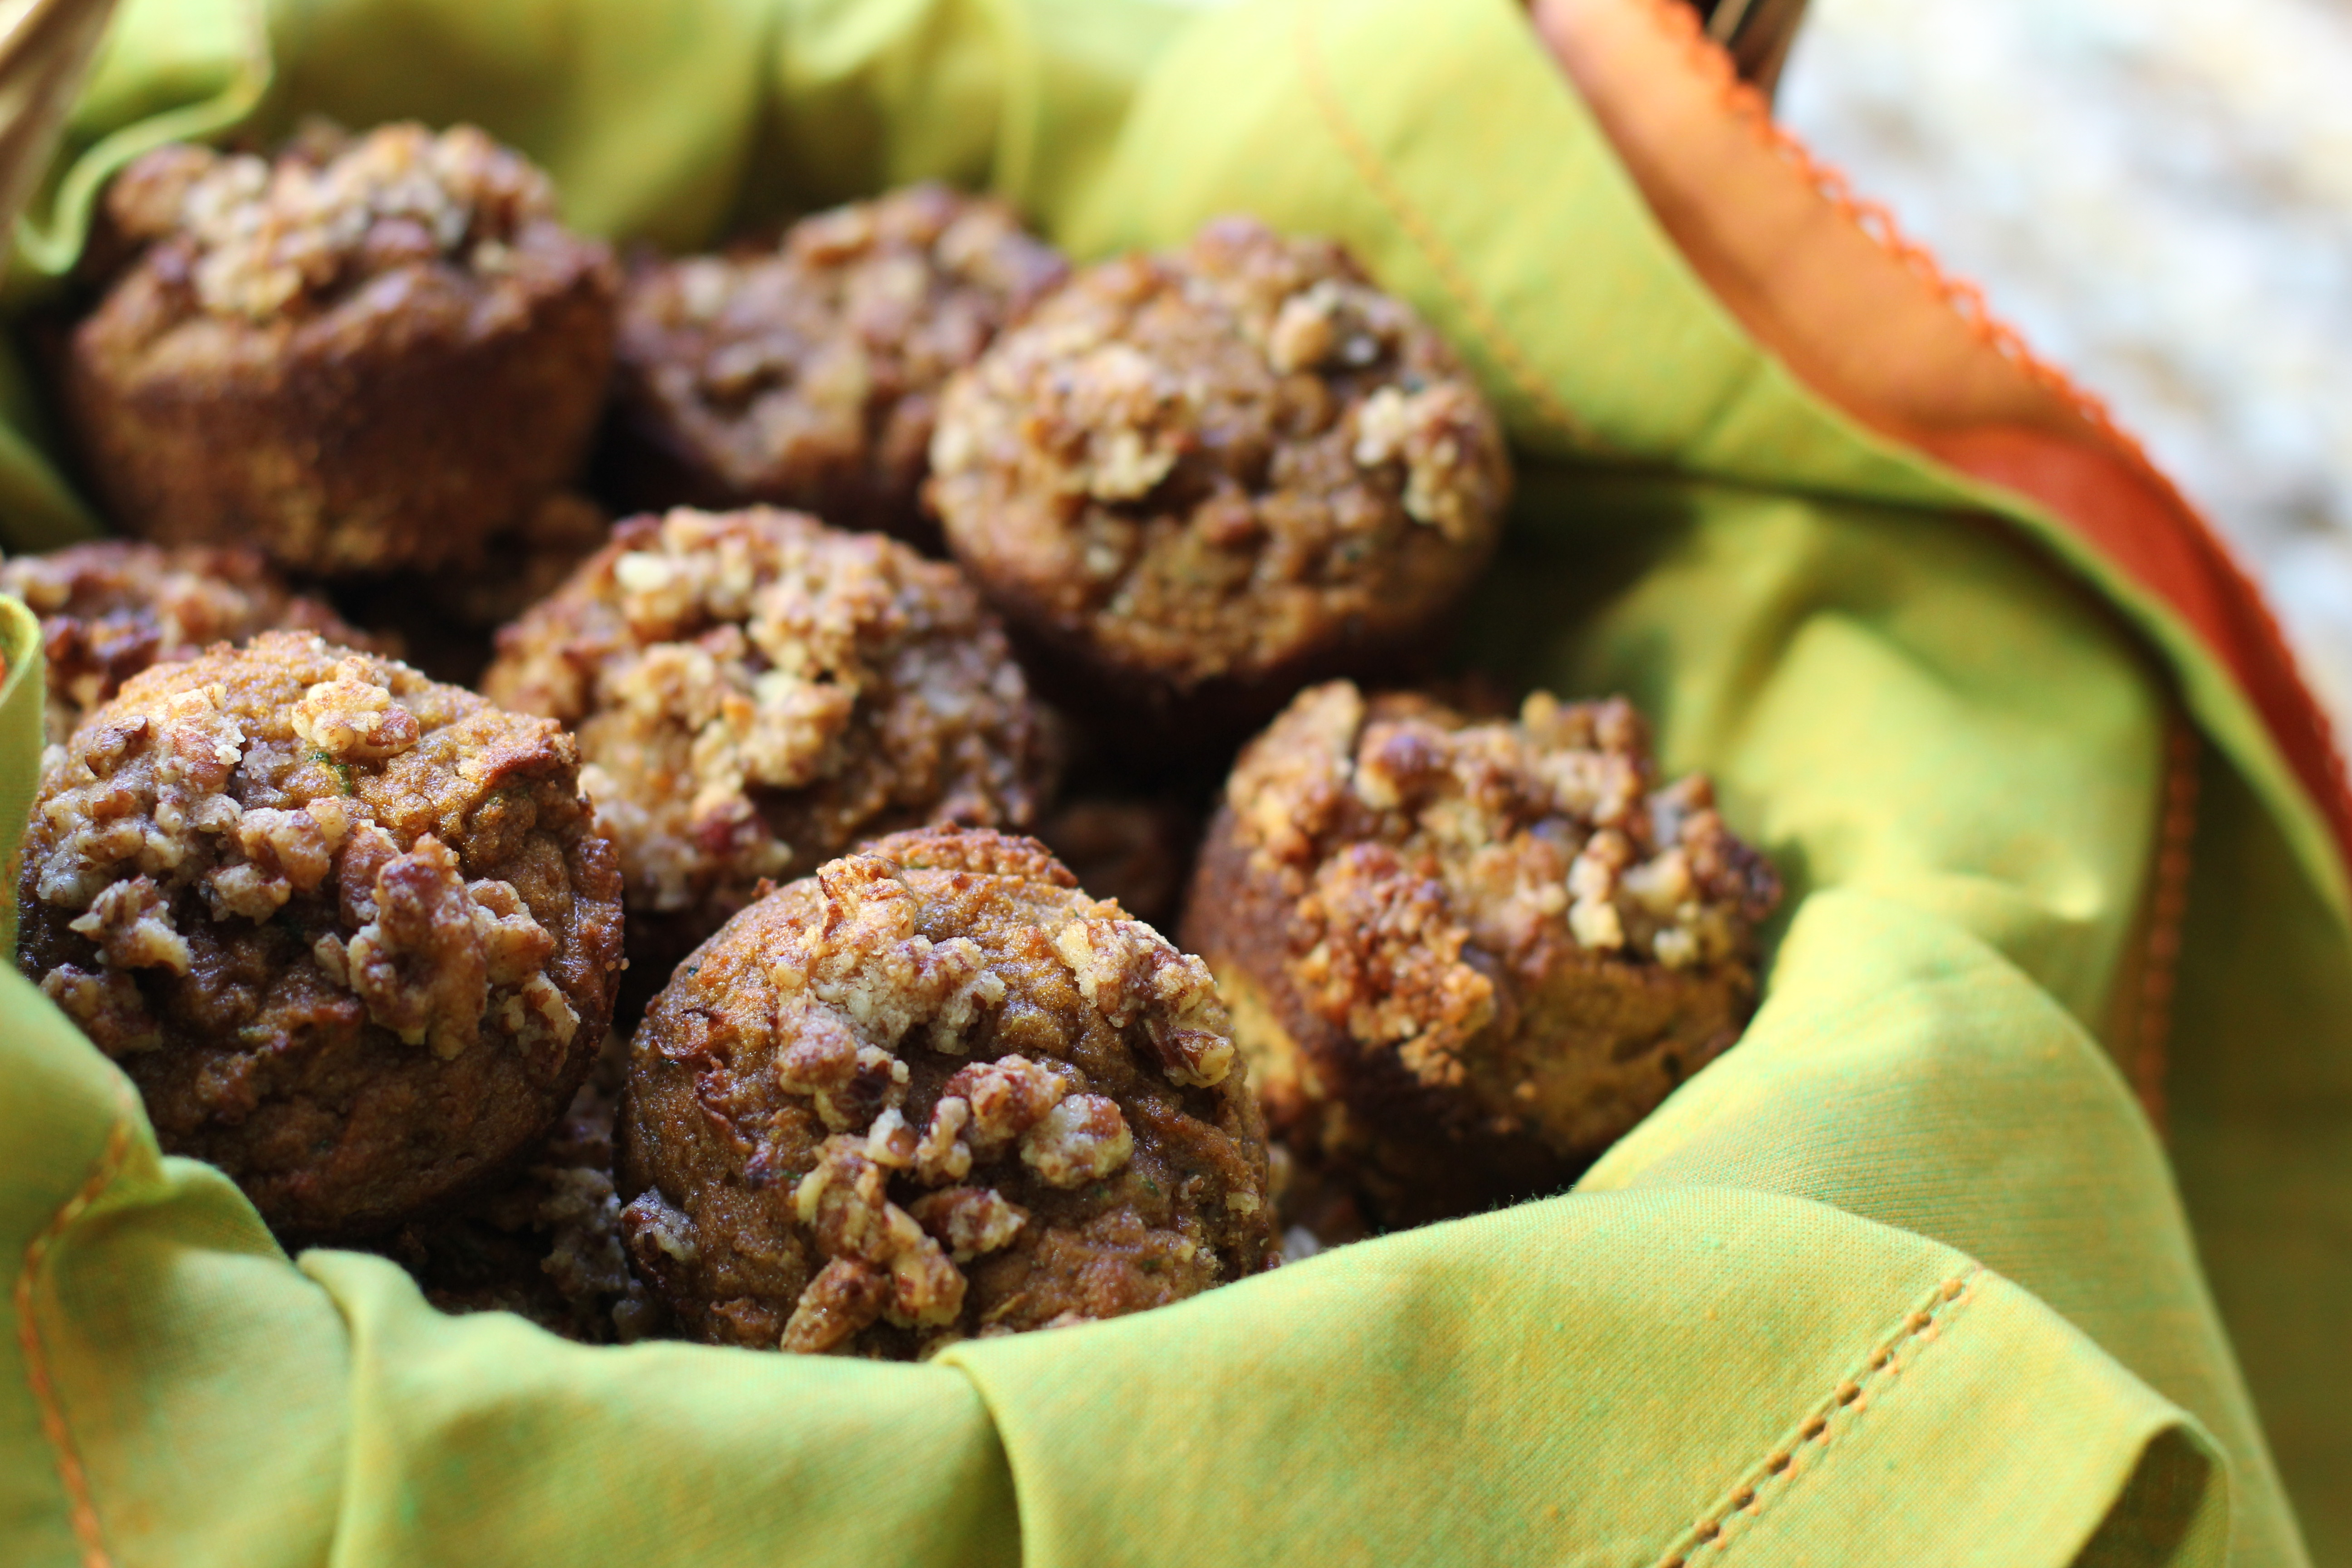 Paleo Table - Pumpkin Zucchini Muffins with Streusel Topping